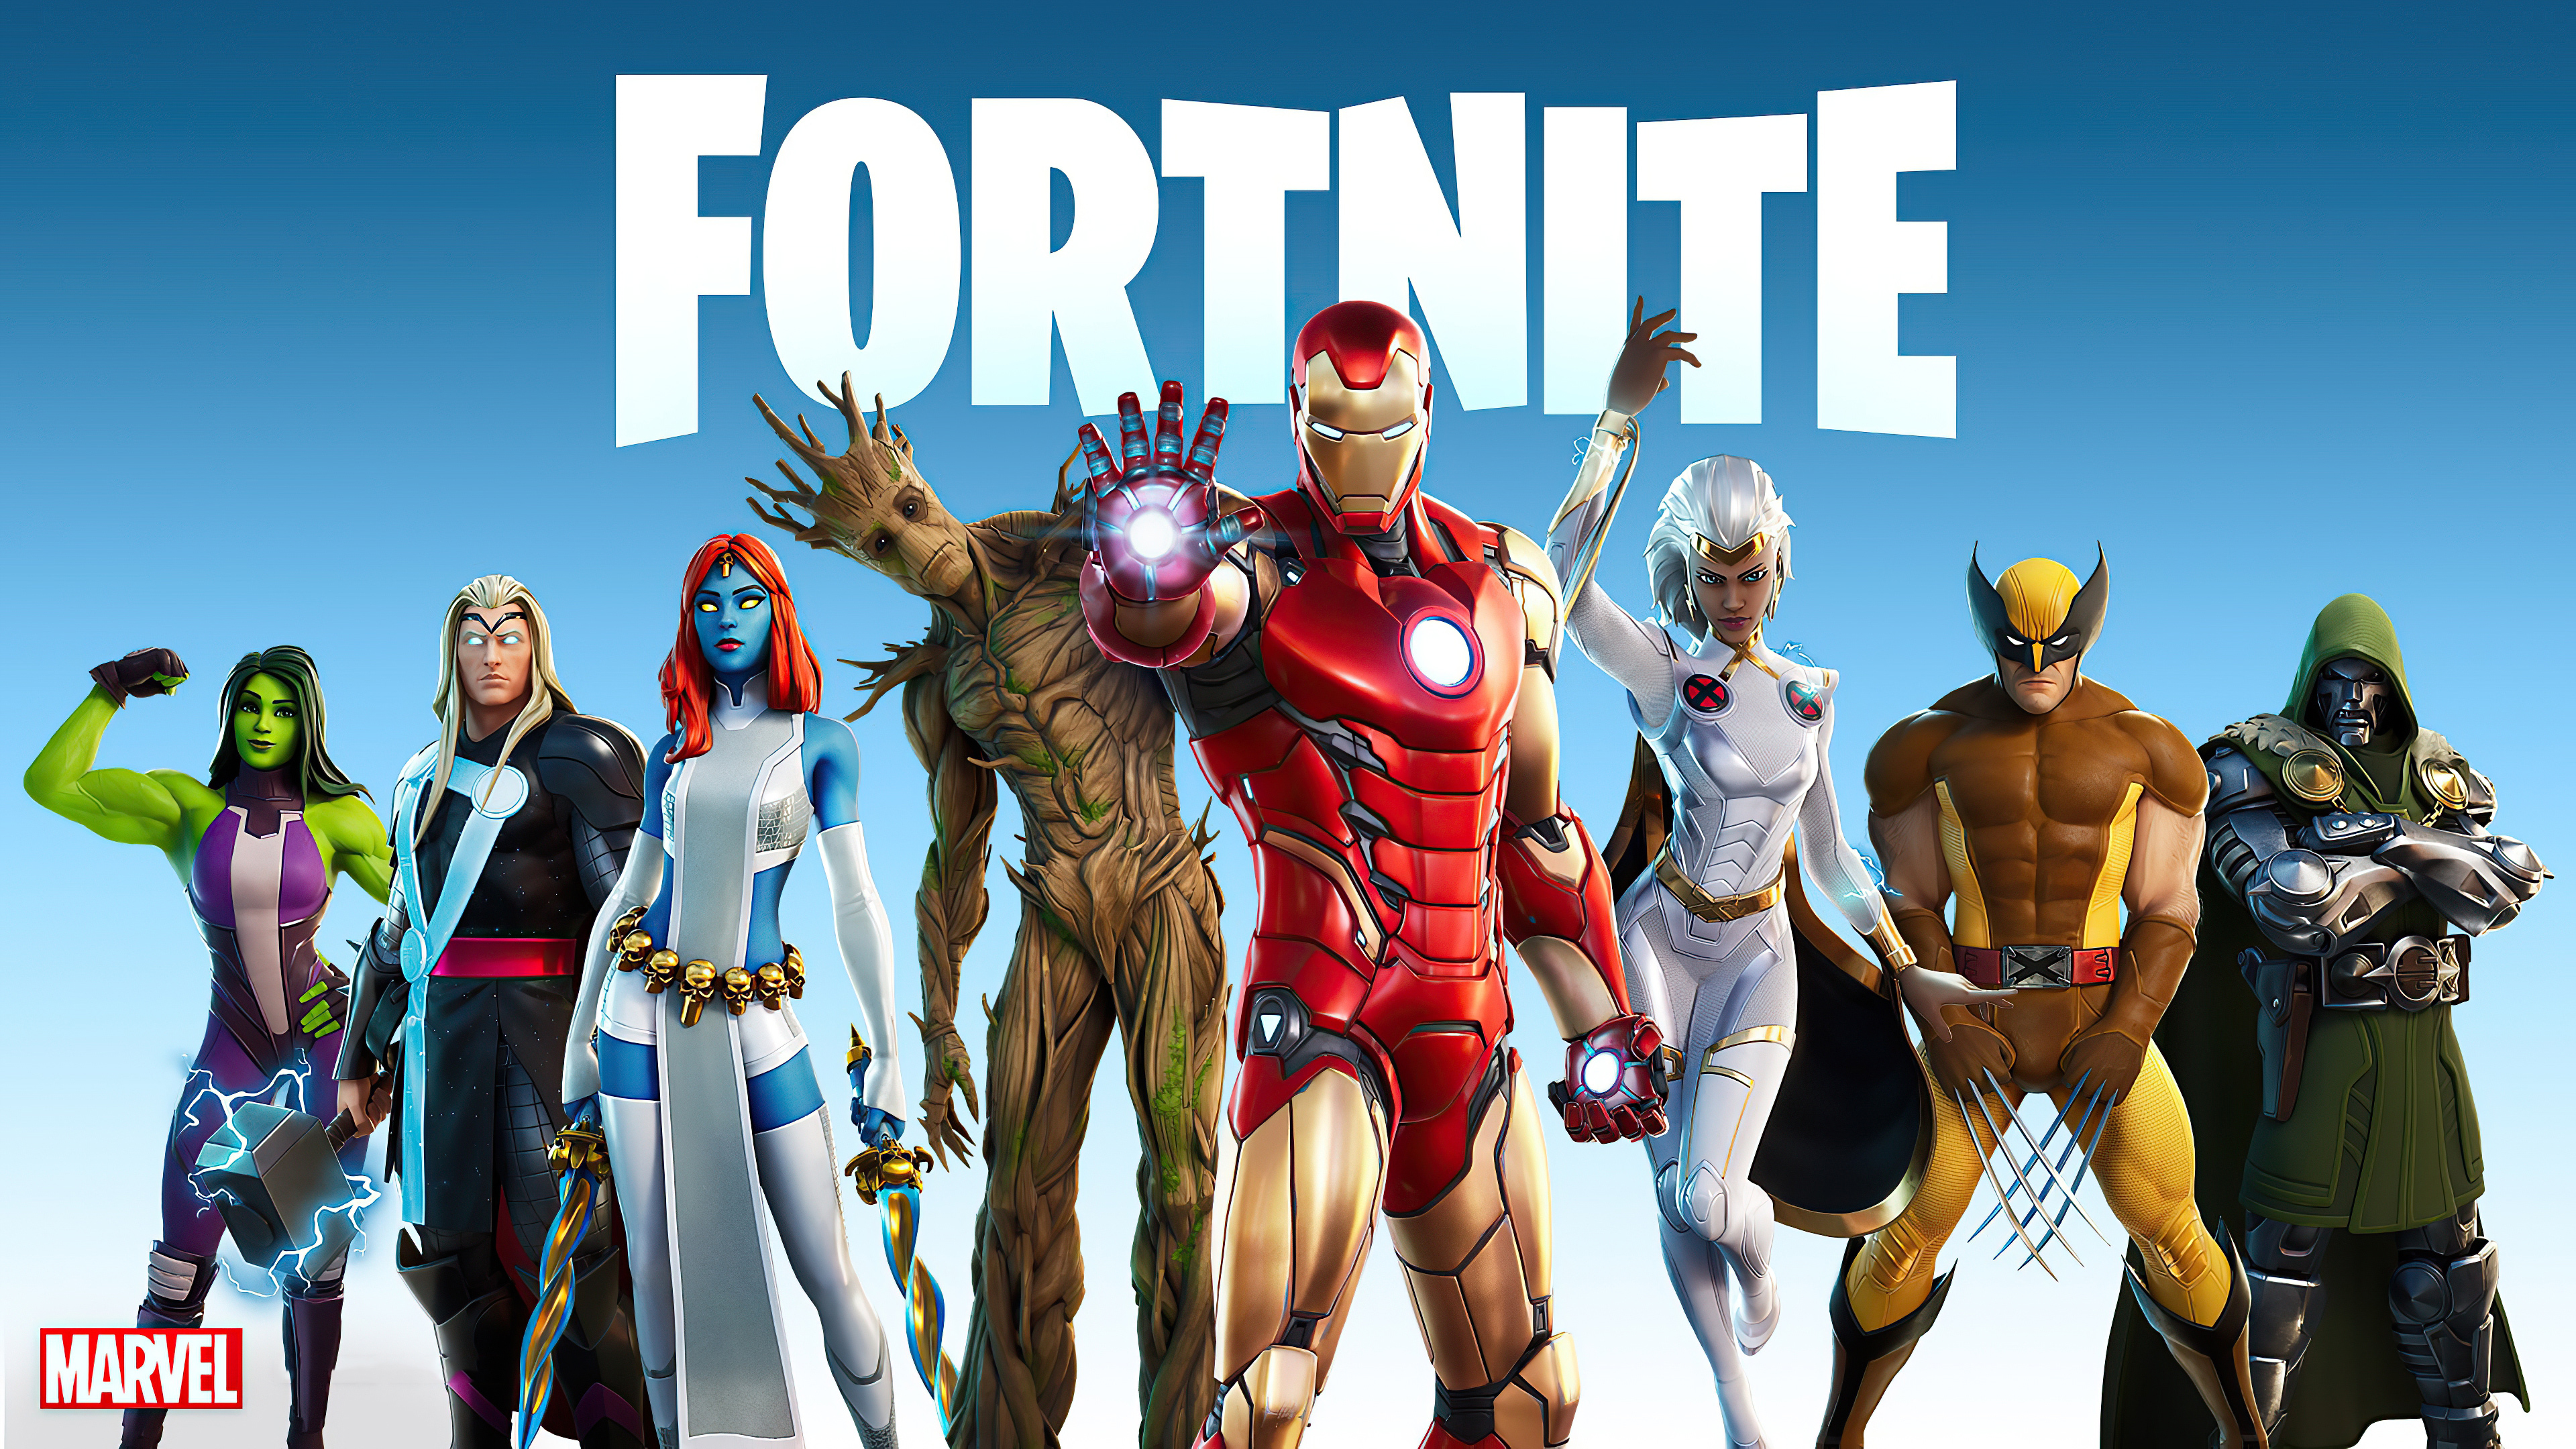 fortnite-season-4-nexus-war-2020-7h.jpg